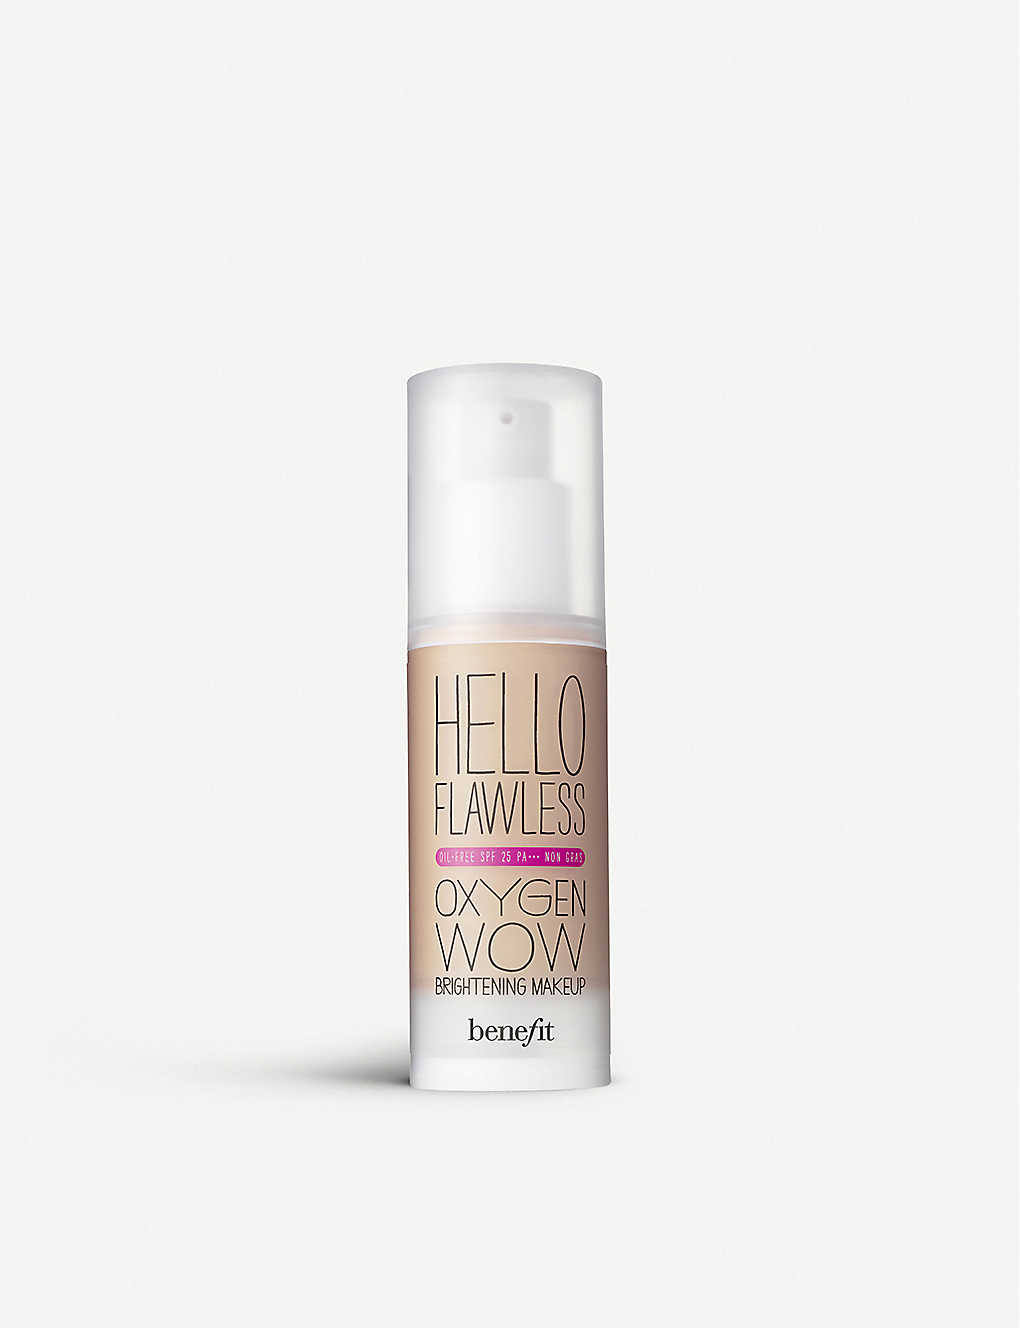 BENEFIT: HELLO FLAWLESS OXYGEN WOW NUTMEG